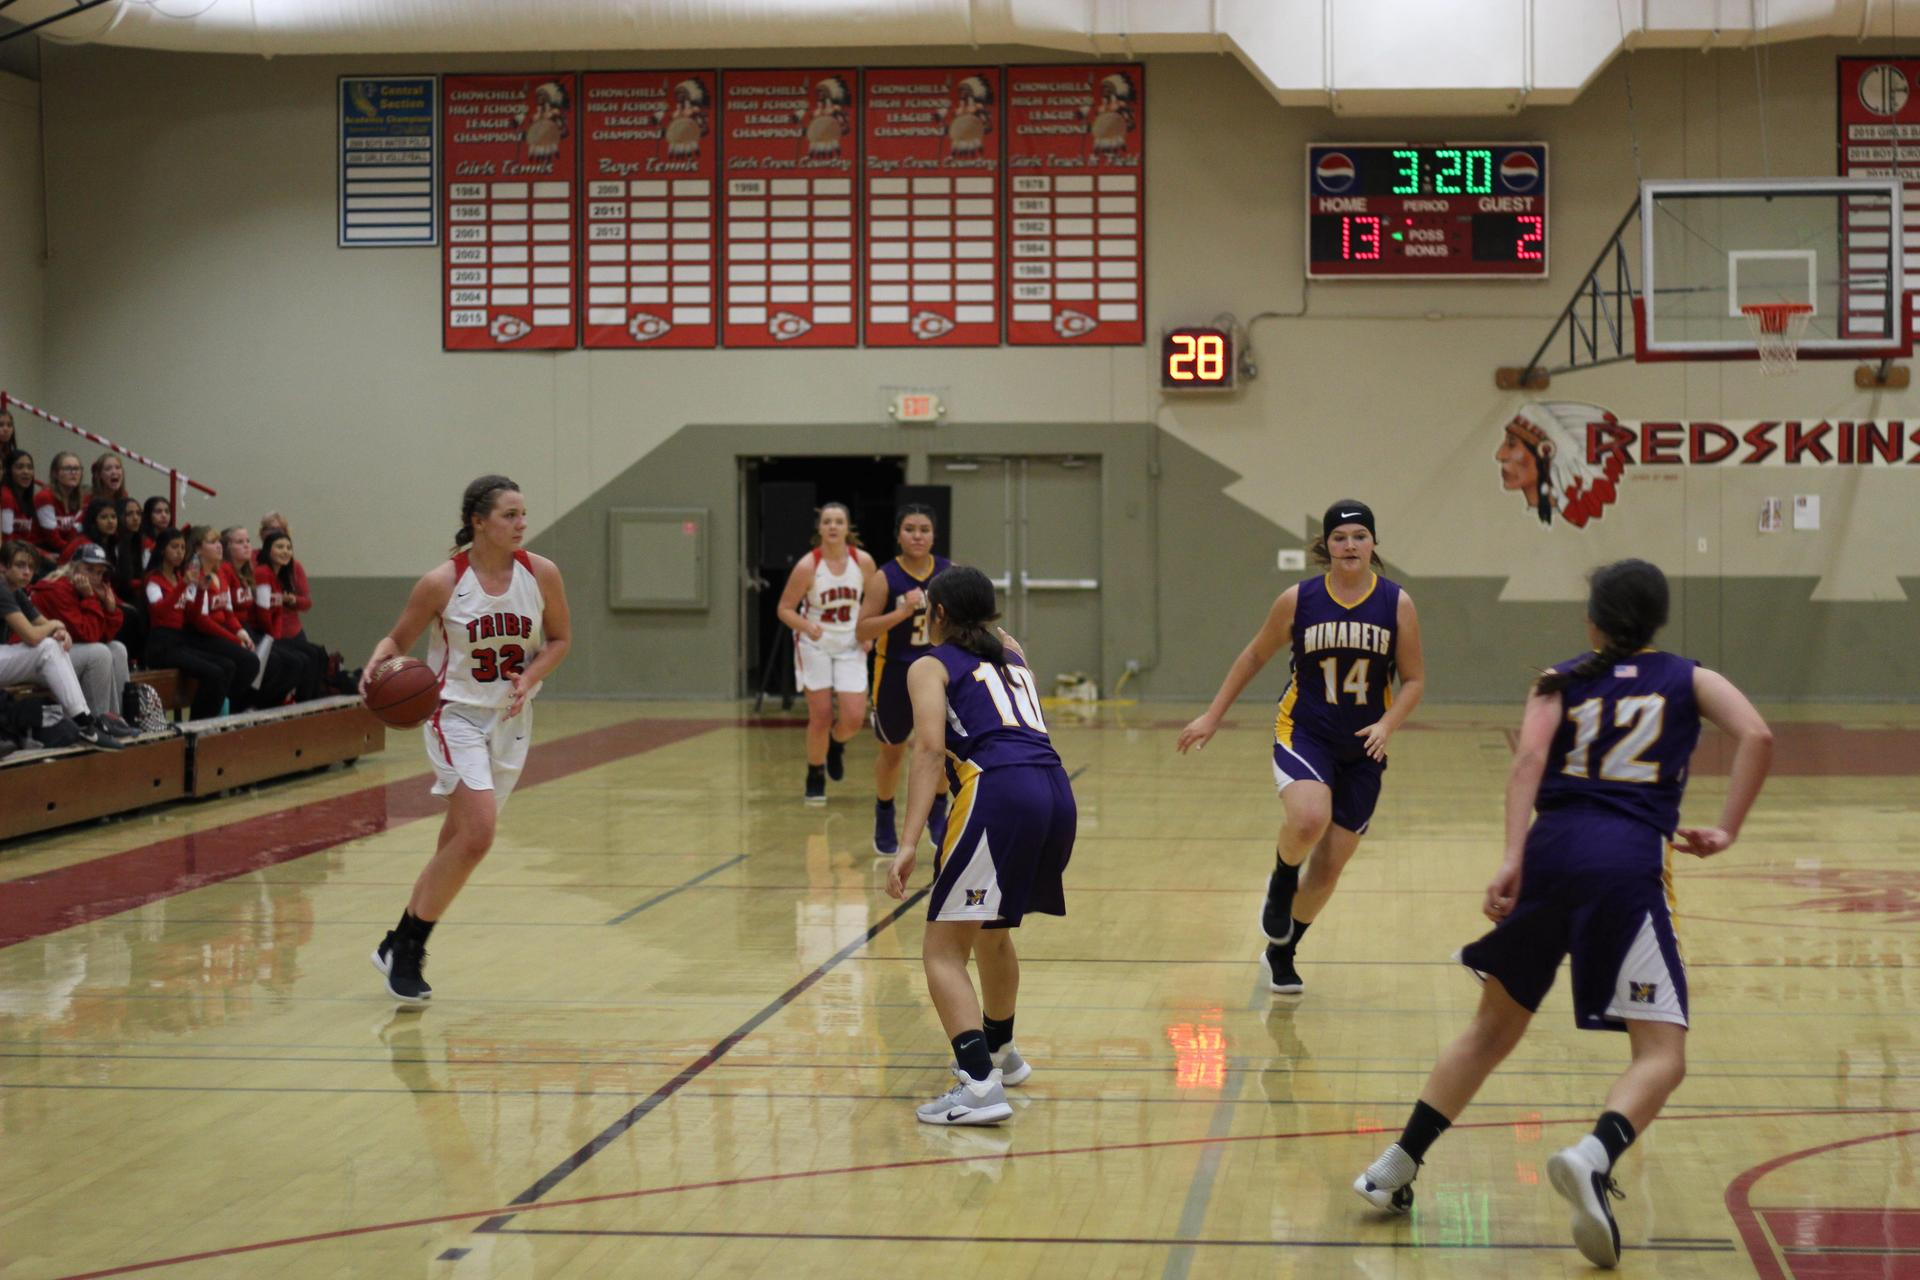 Hannah Stockton with the ball